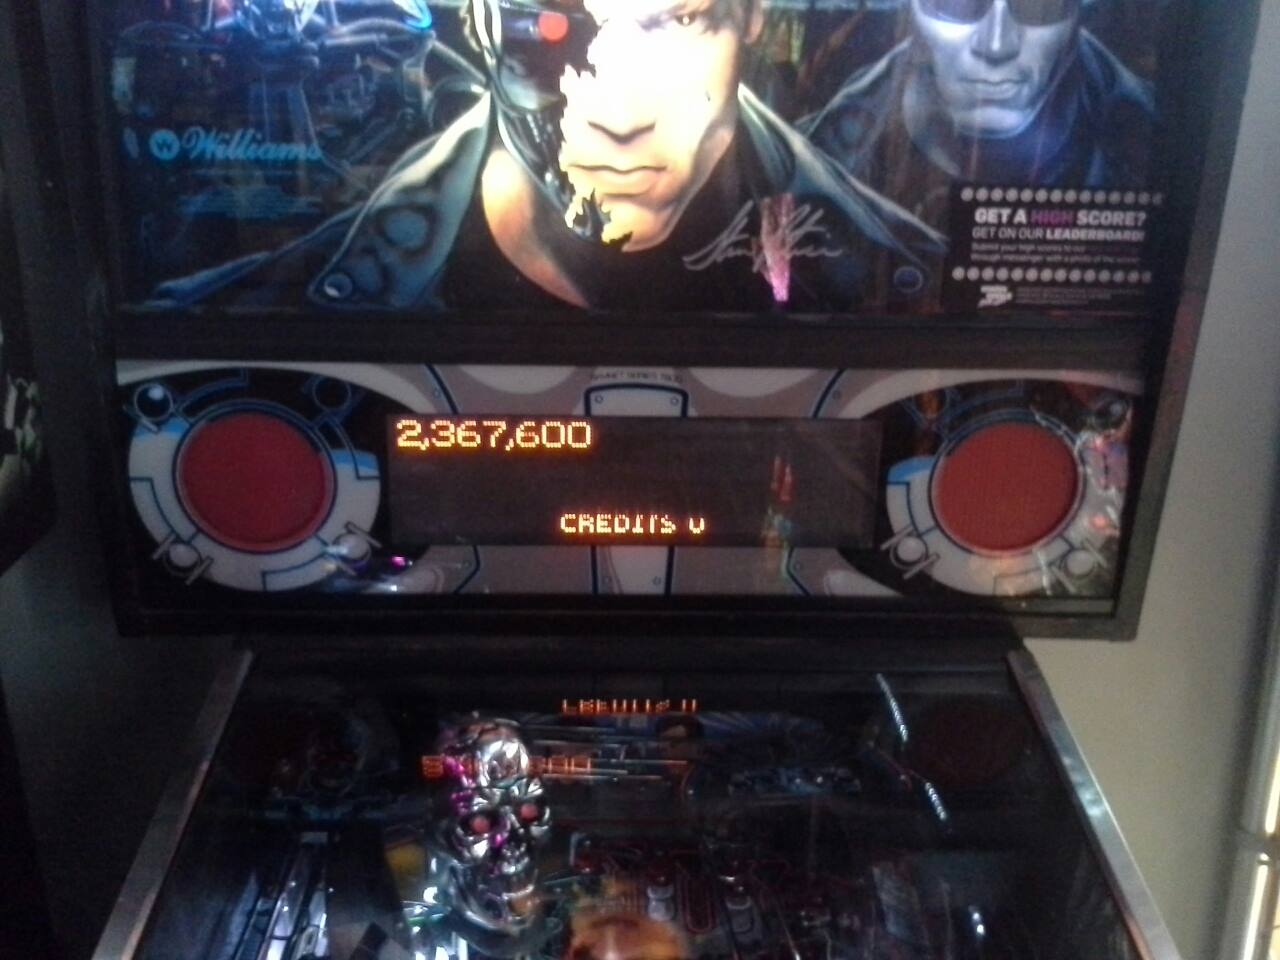 Terminator 2: Judgement Day 2,367,600 points